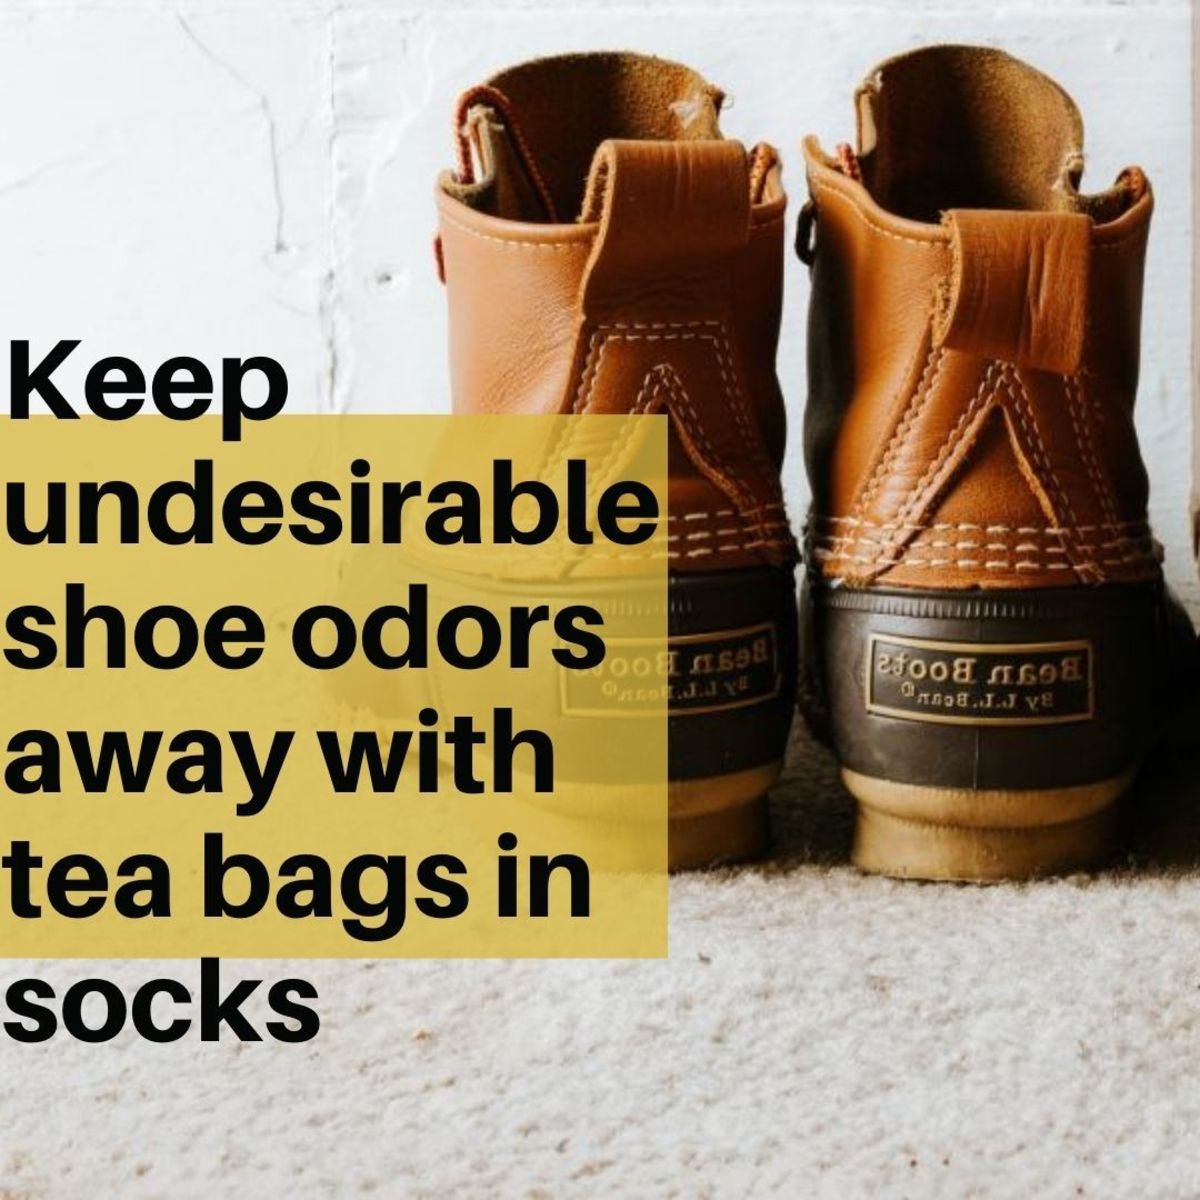 Keep undesirable odors away with tea bags in socks.